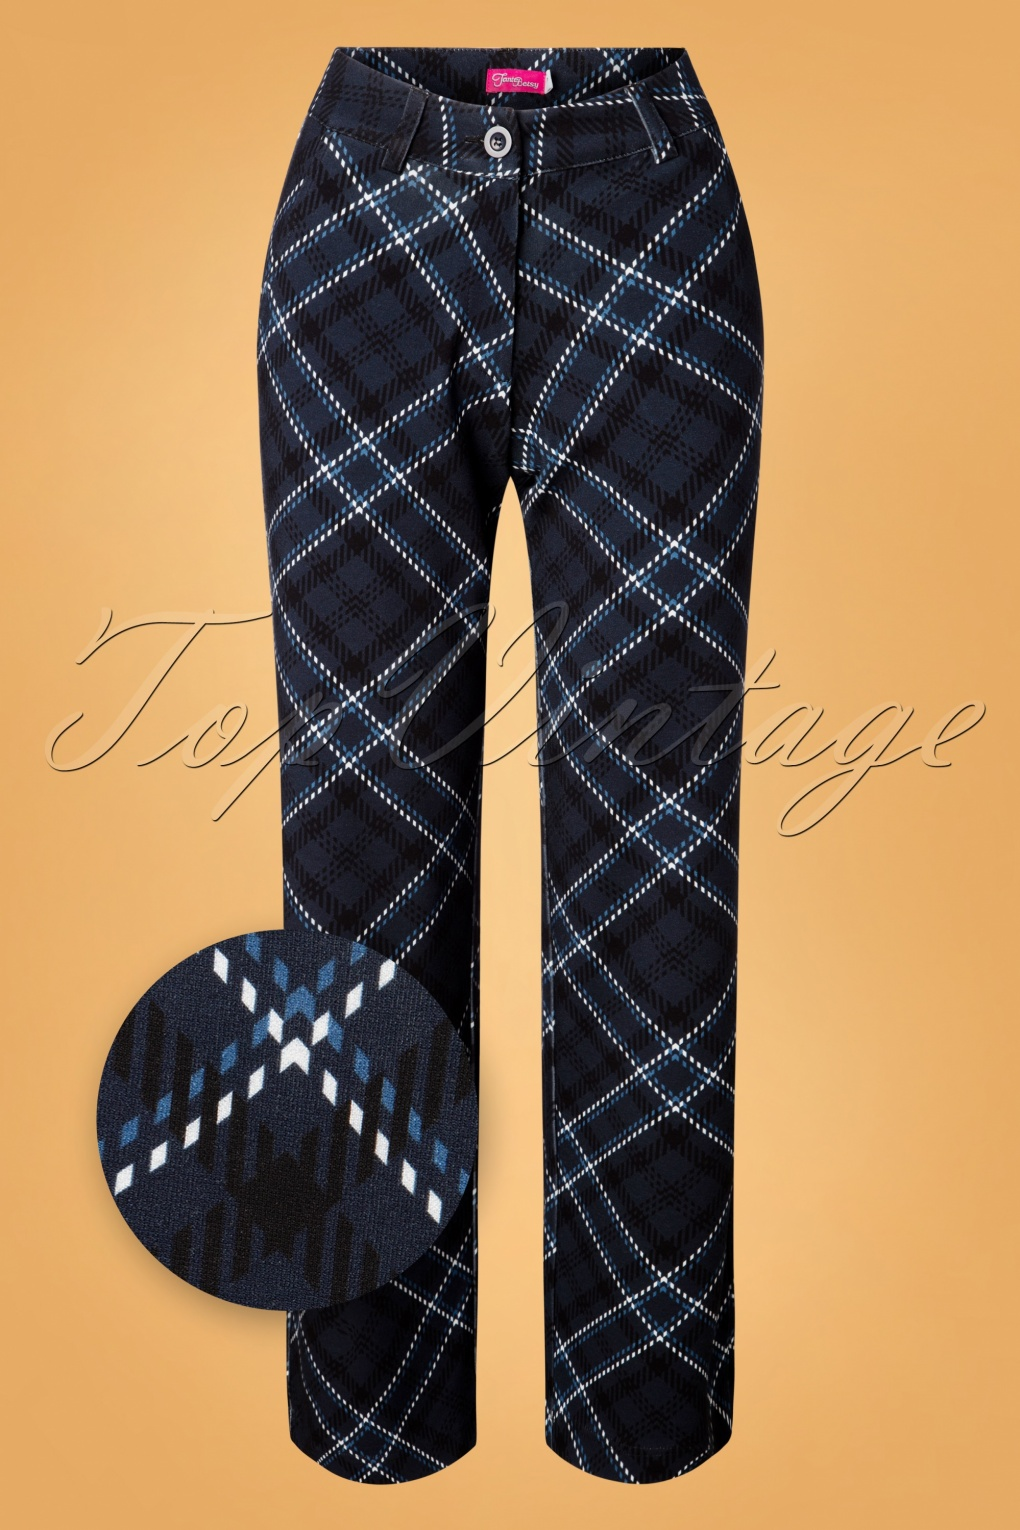 60s – 70s Pants, Jeans, Hippie, Bell Bottoms, Jumpsuits 60s Baggy Tartan Trousers in Black and Blue £79.95 AT vintagedancer.com